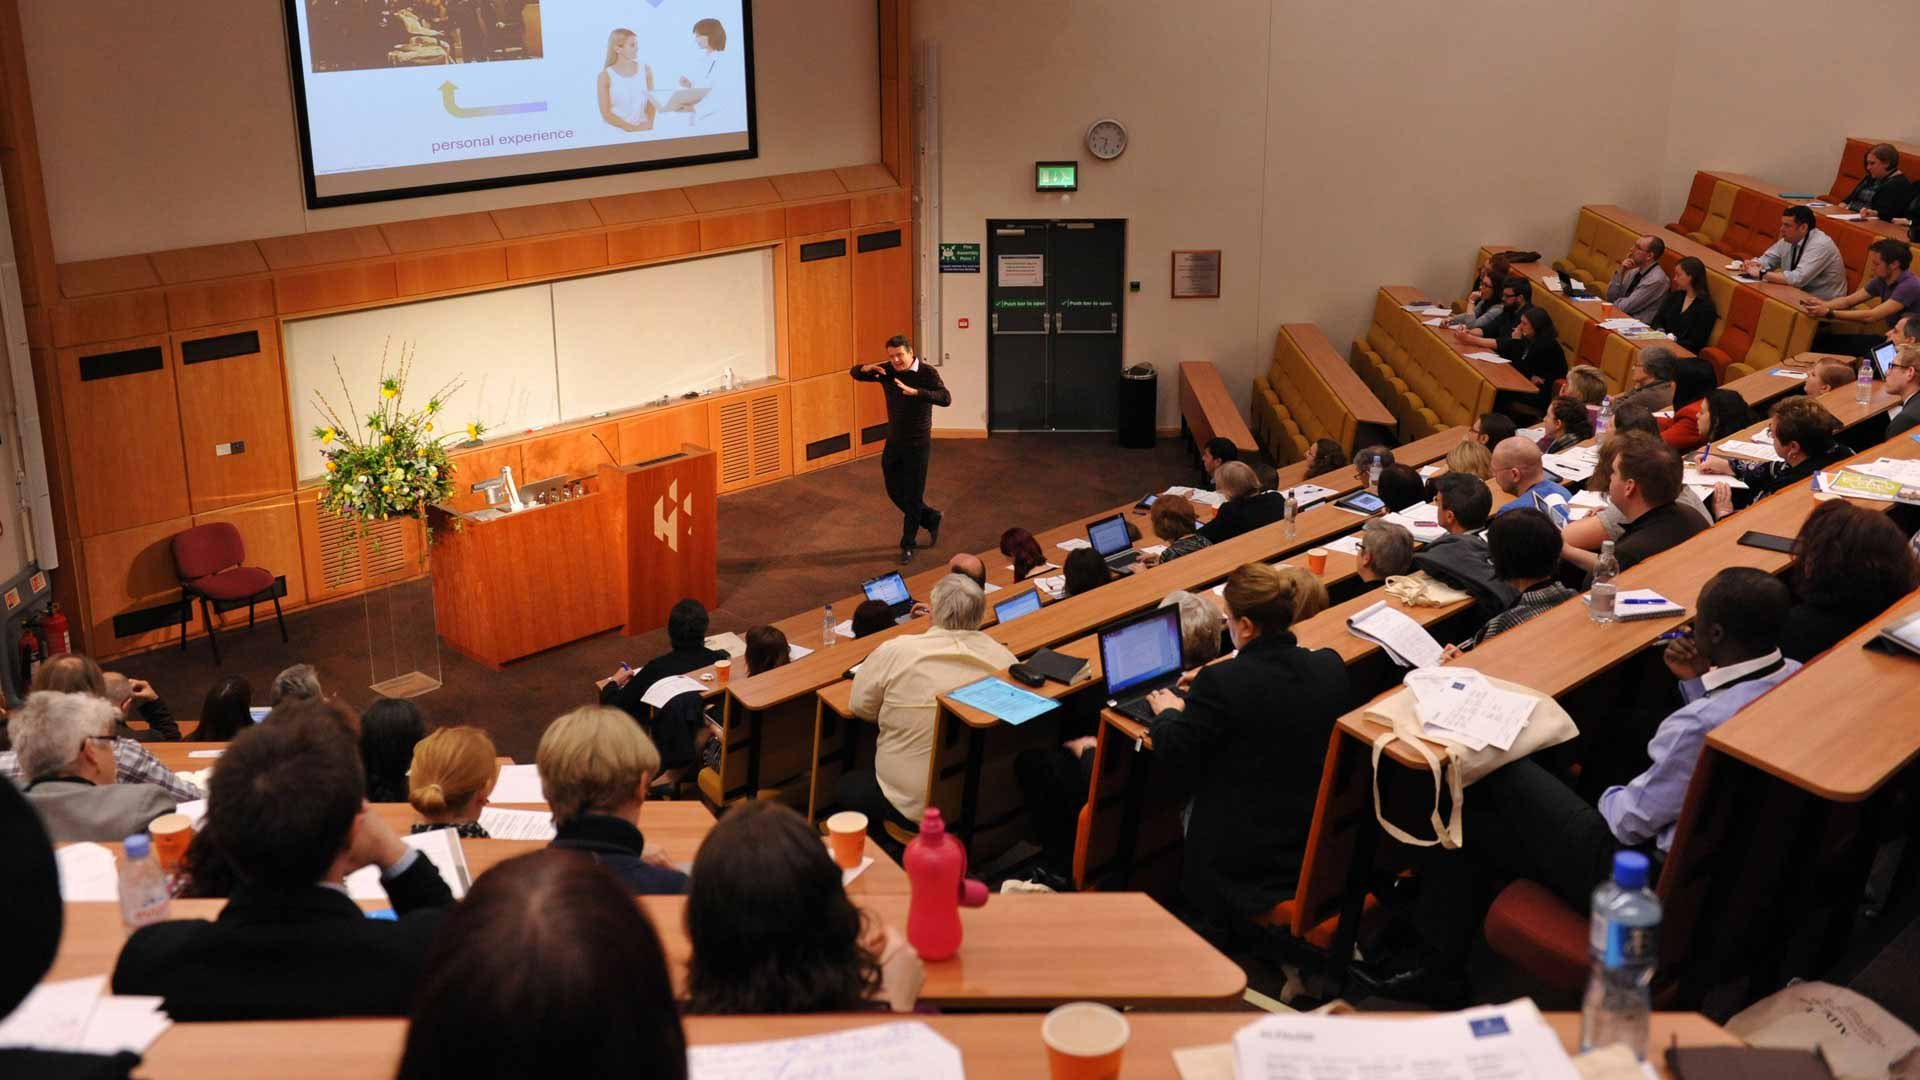 Many students receiving a lecture from a member of staff in a brown and cream lecture hall.